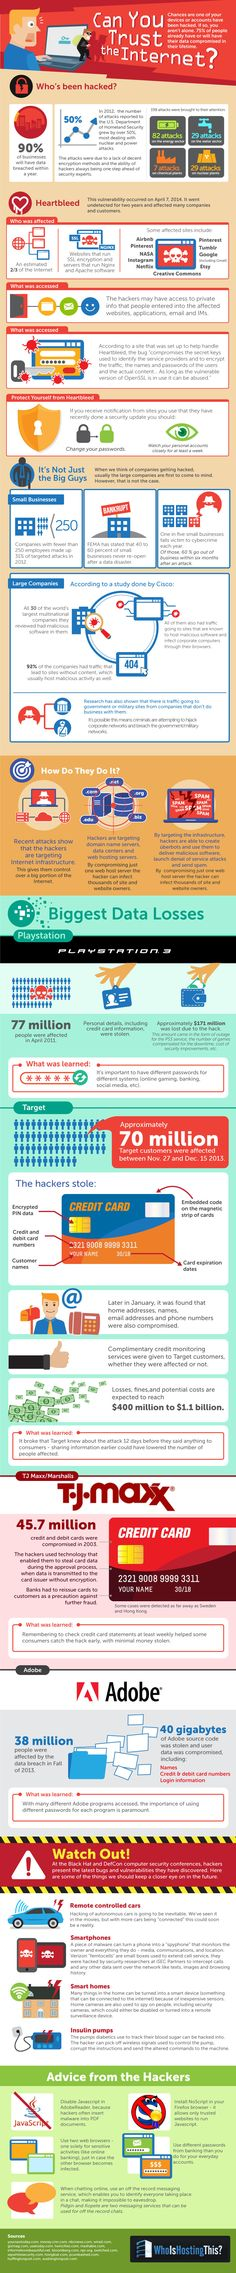 Can You Trust the #Internet - #Infographic #technology